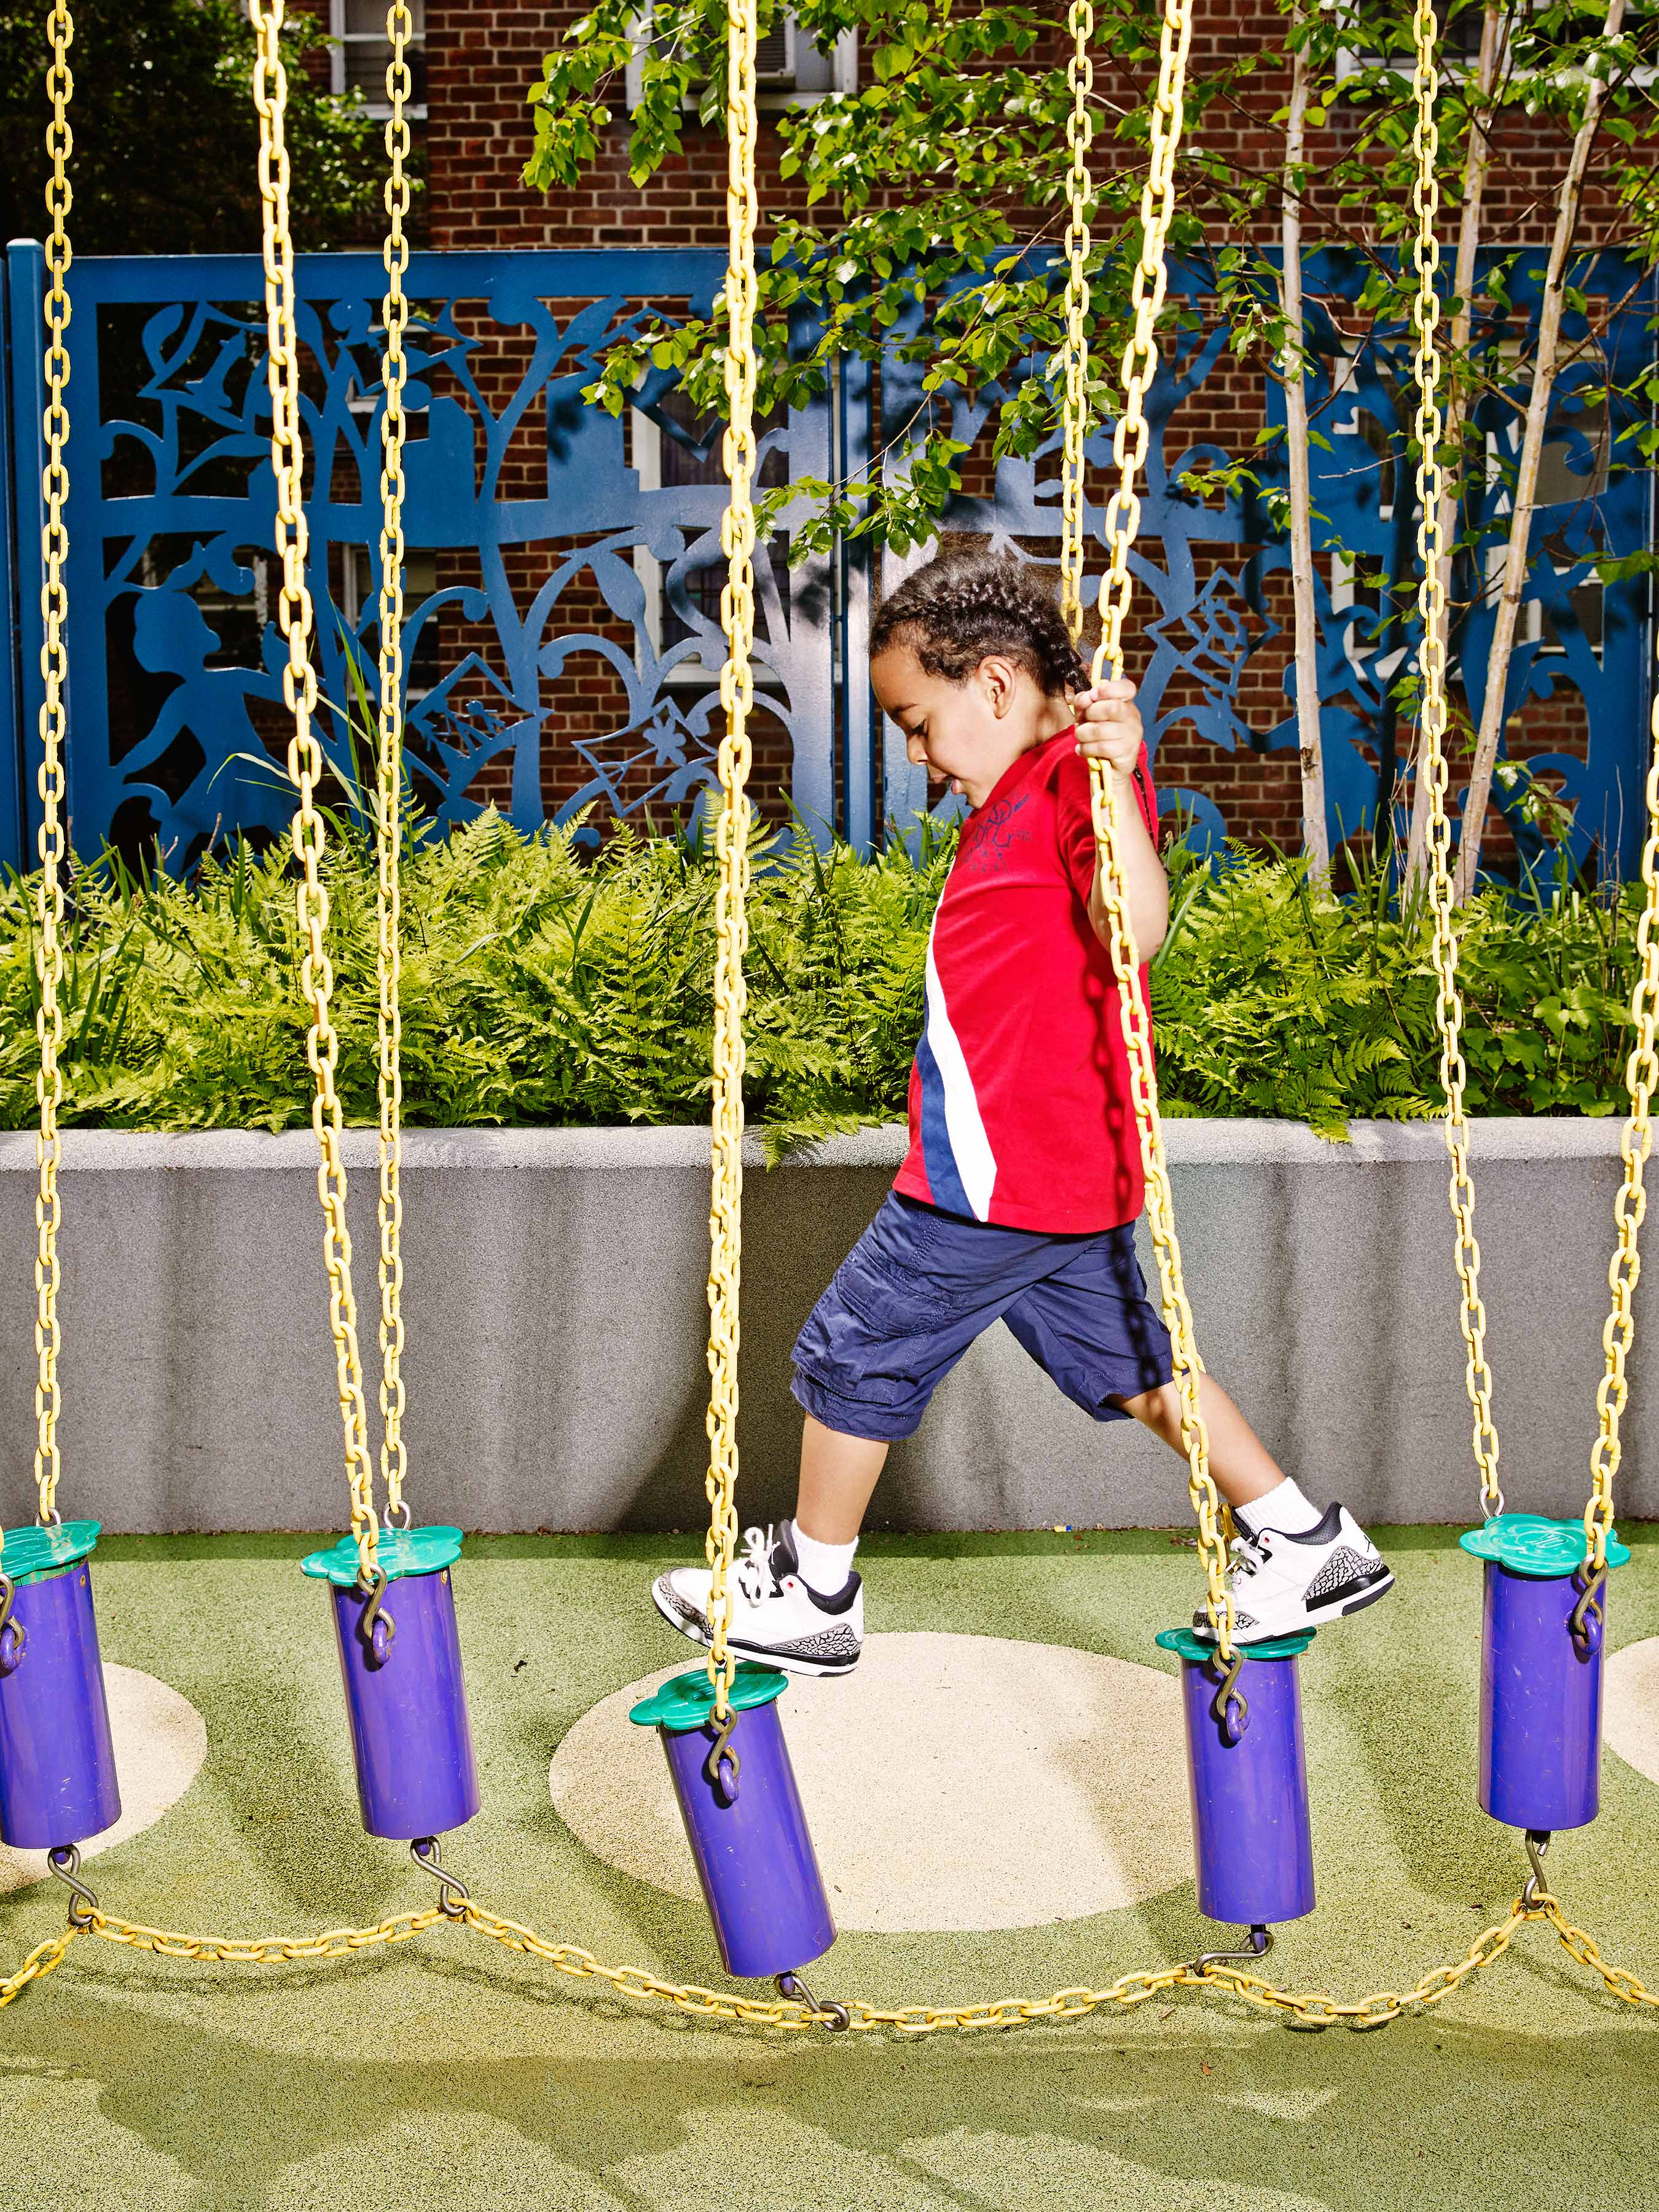 Luis Giuria's son, Xzavier, likes to play on the swing blocks, one of the playground apparatuses meant to get kids excited about exercise.